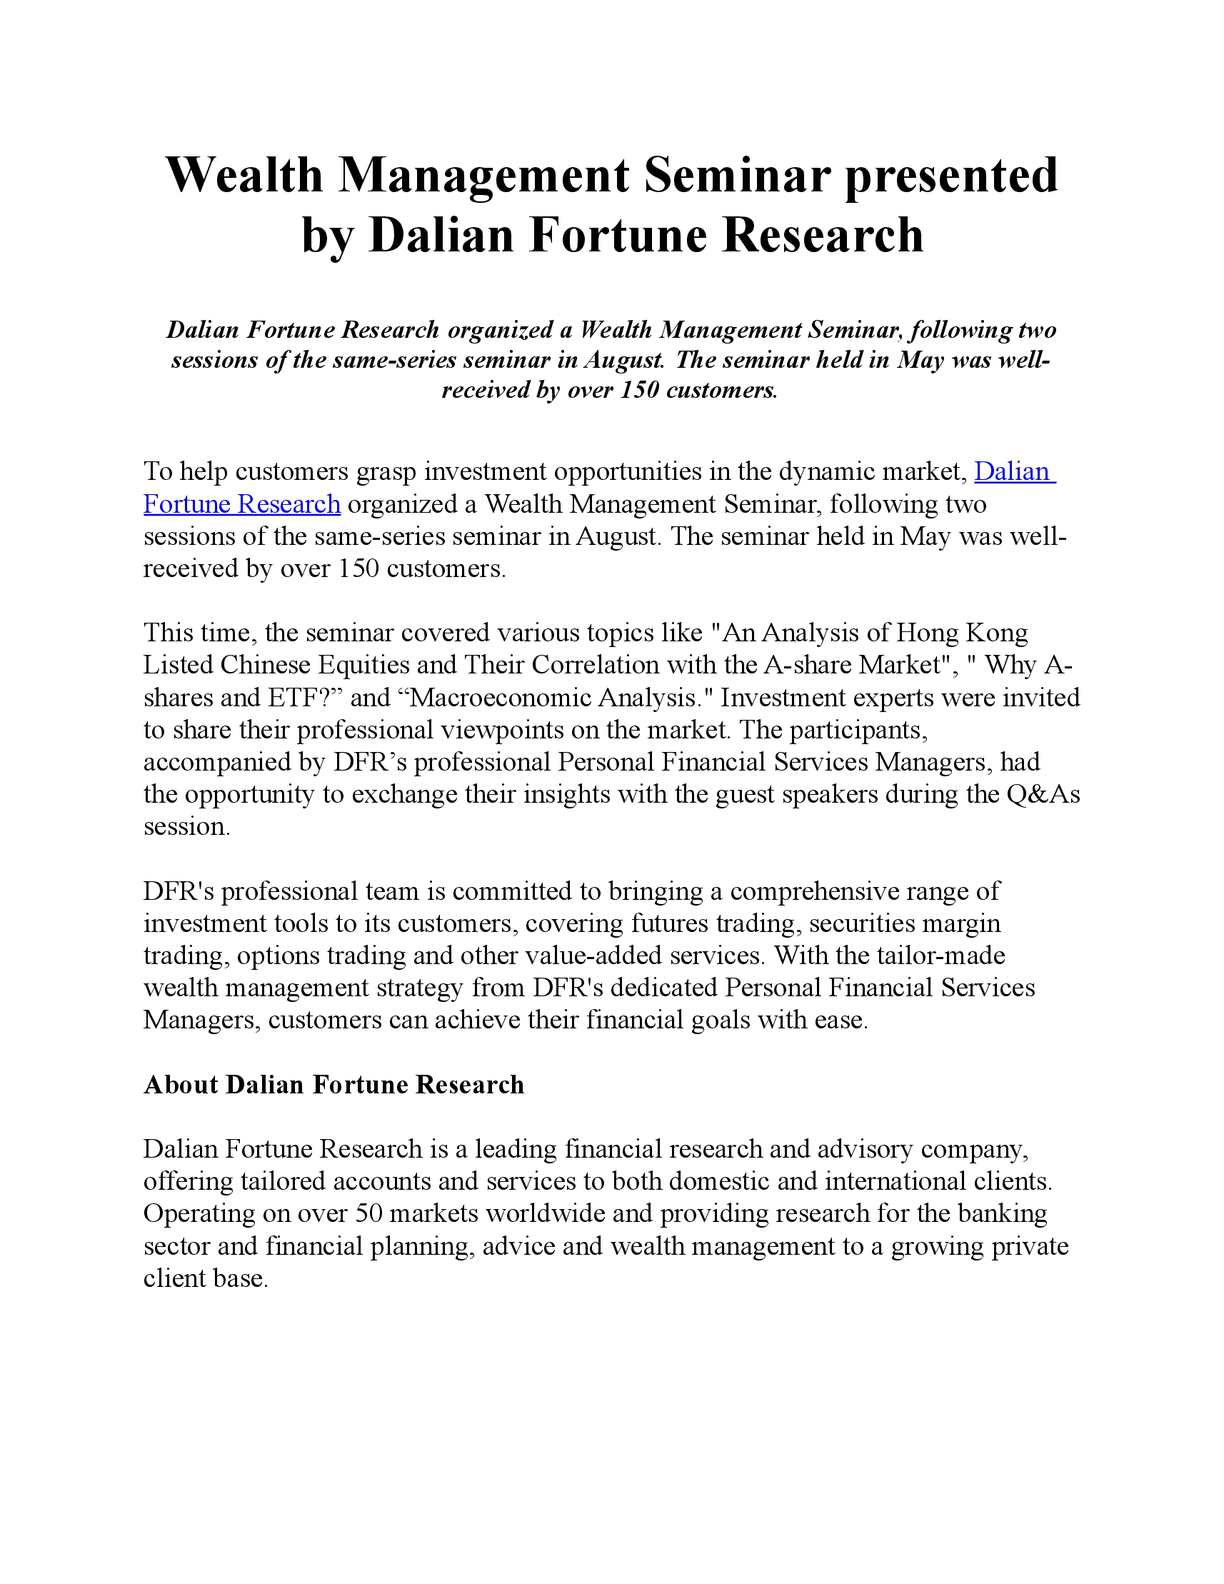 Calaméo - Wealth Management Seminar presented by Dalian Fortune Research